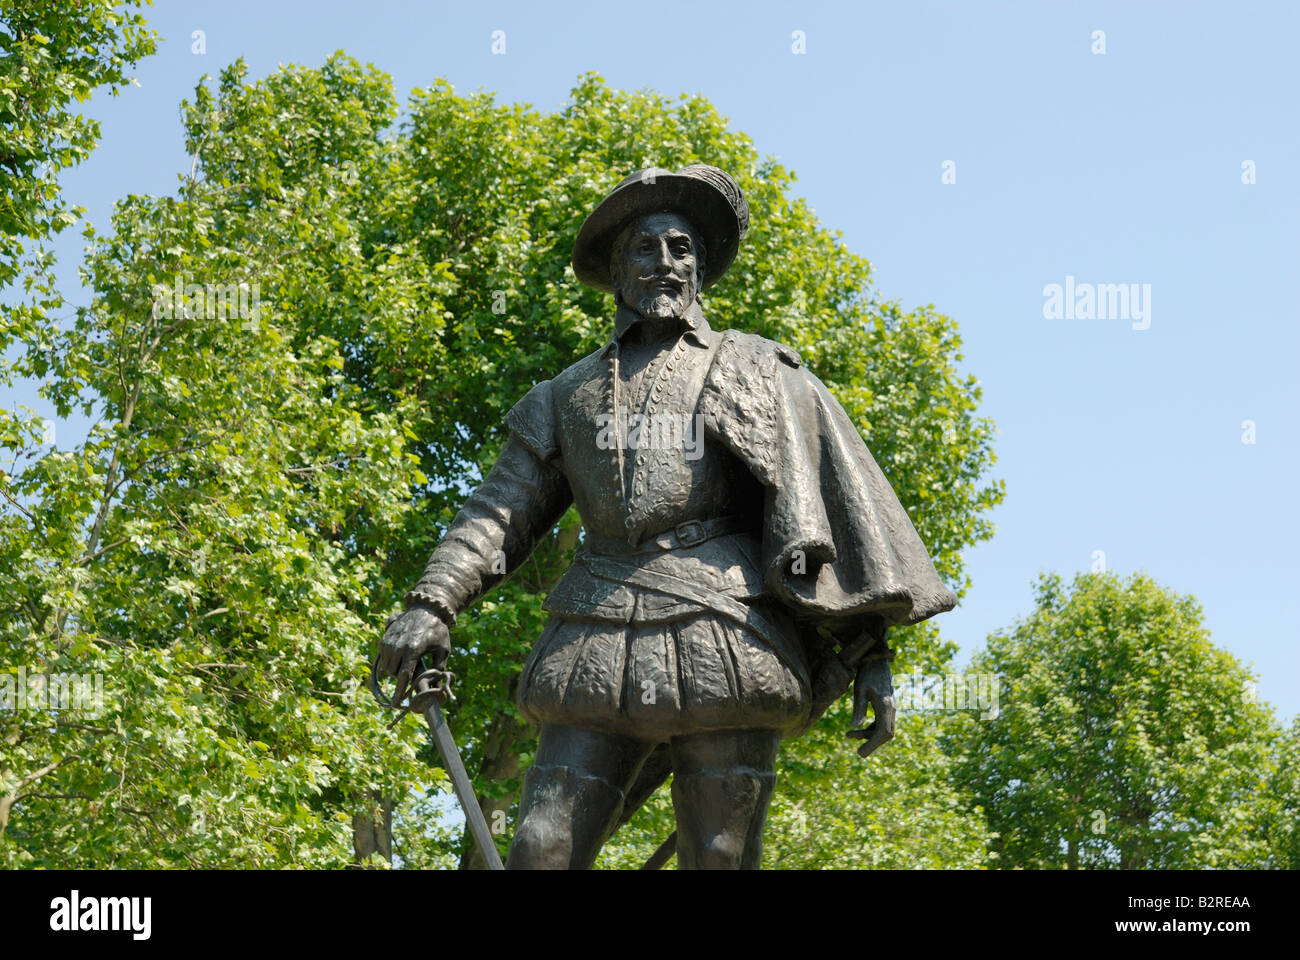 Sir Walter Raleigh statue, Greenwich - Stock Image